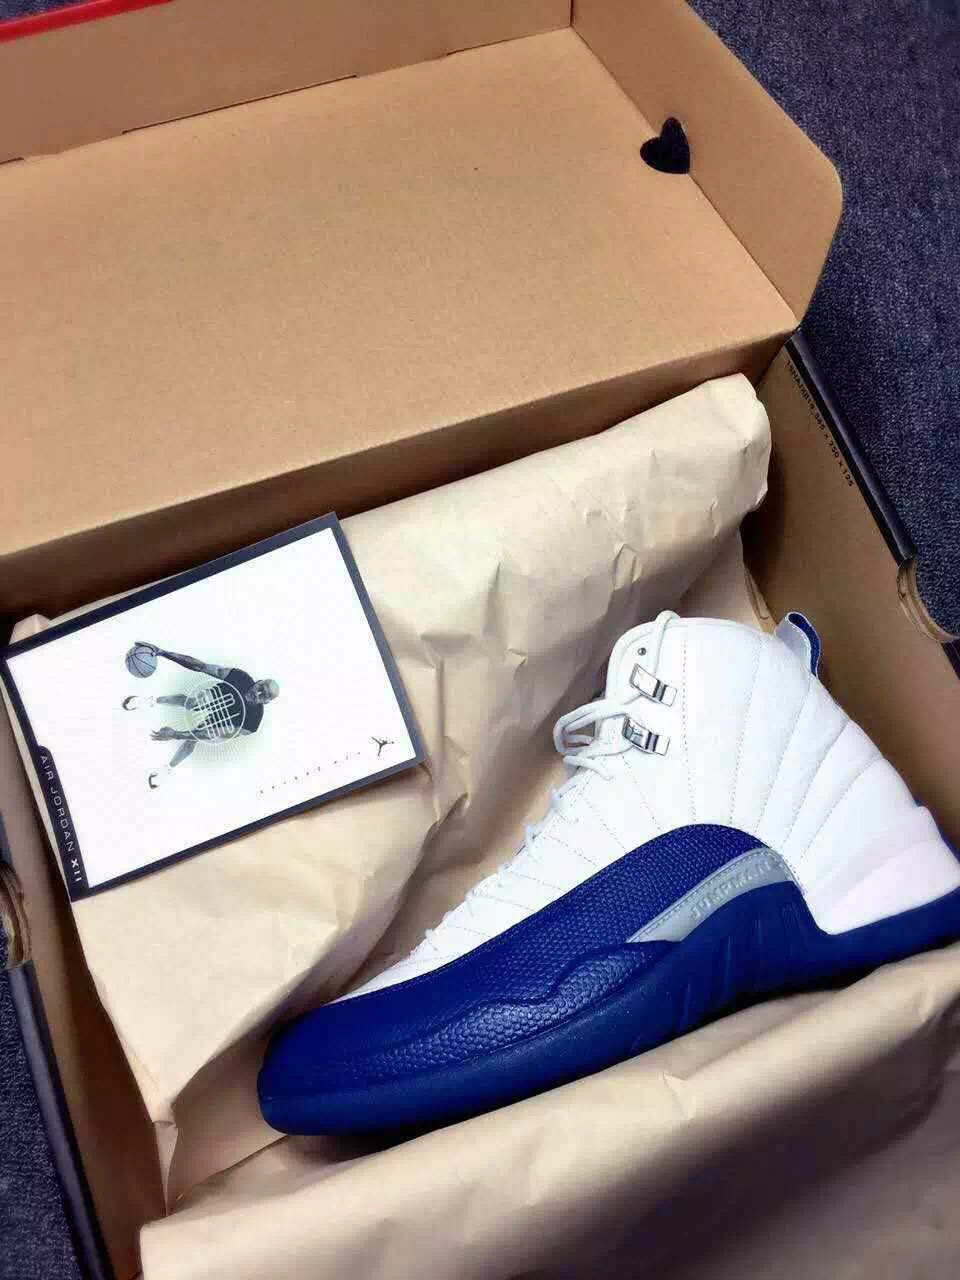 9a940a64f2b77d air jordan 12 retro french blue 2016. 2003 Air Jordan 12 Retro French Blue  Size ...